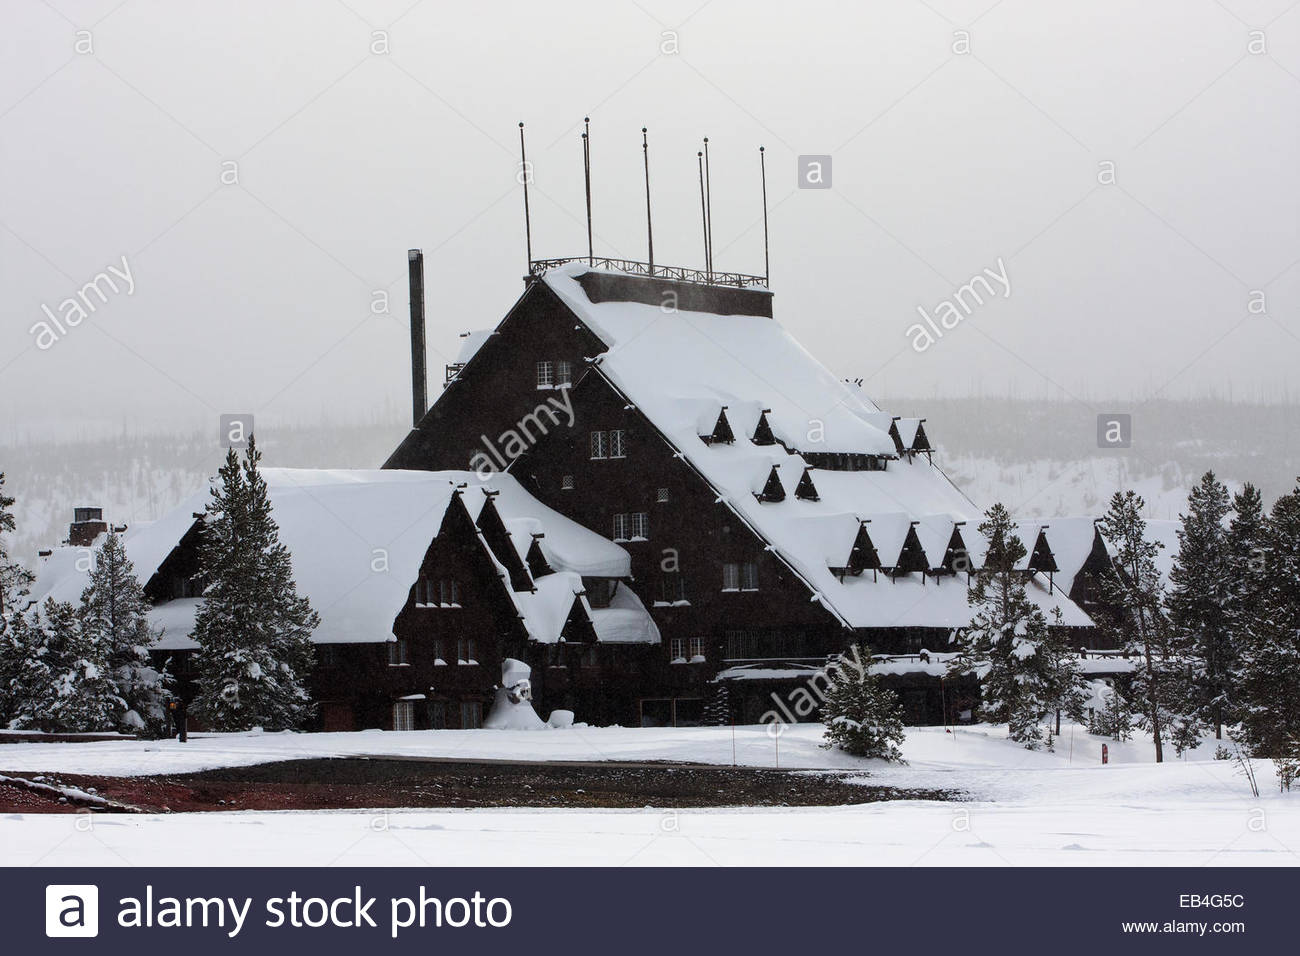 A scenic view of the historic Old Faithful Inn, in a snowy landscape. - Stock Image